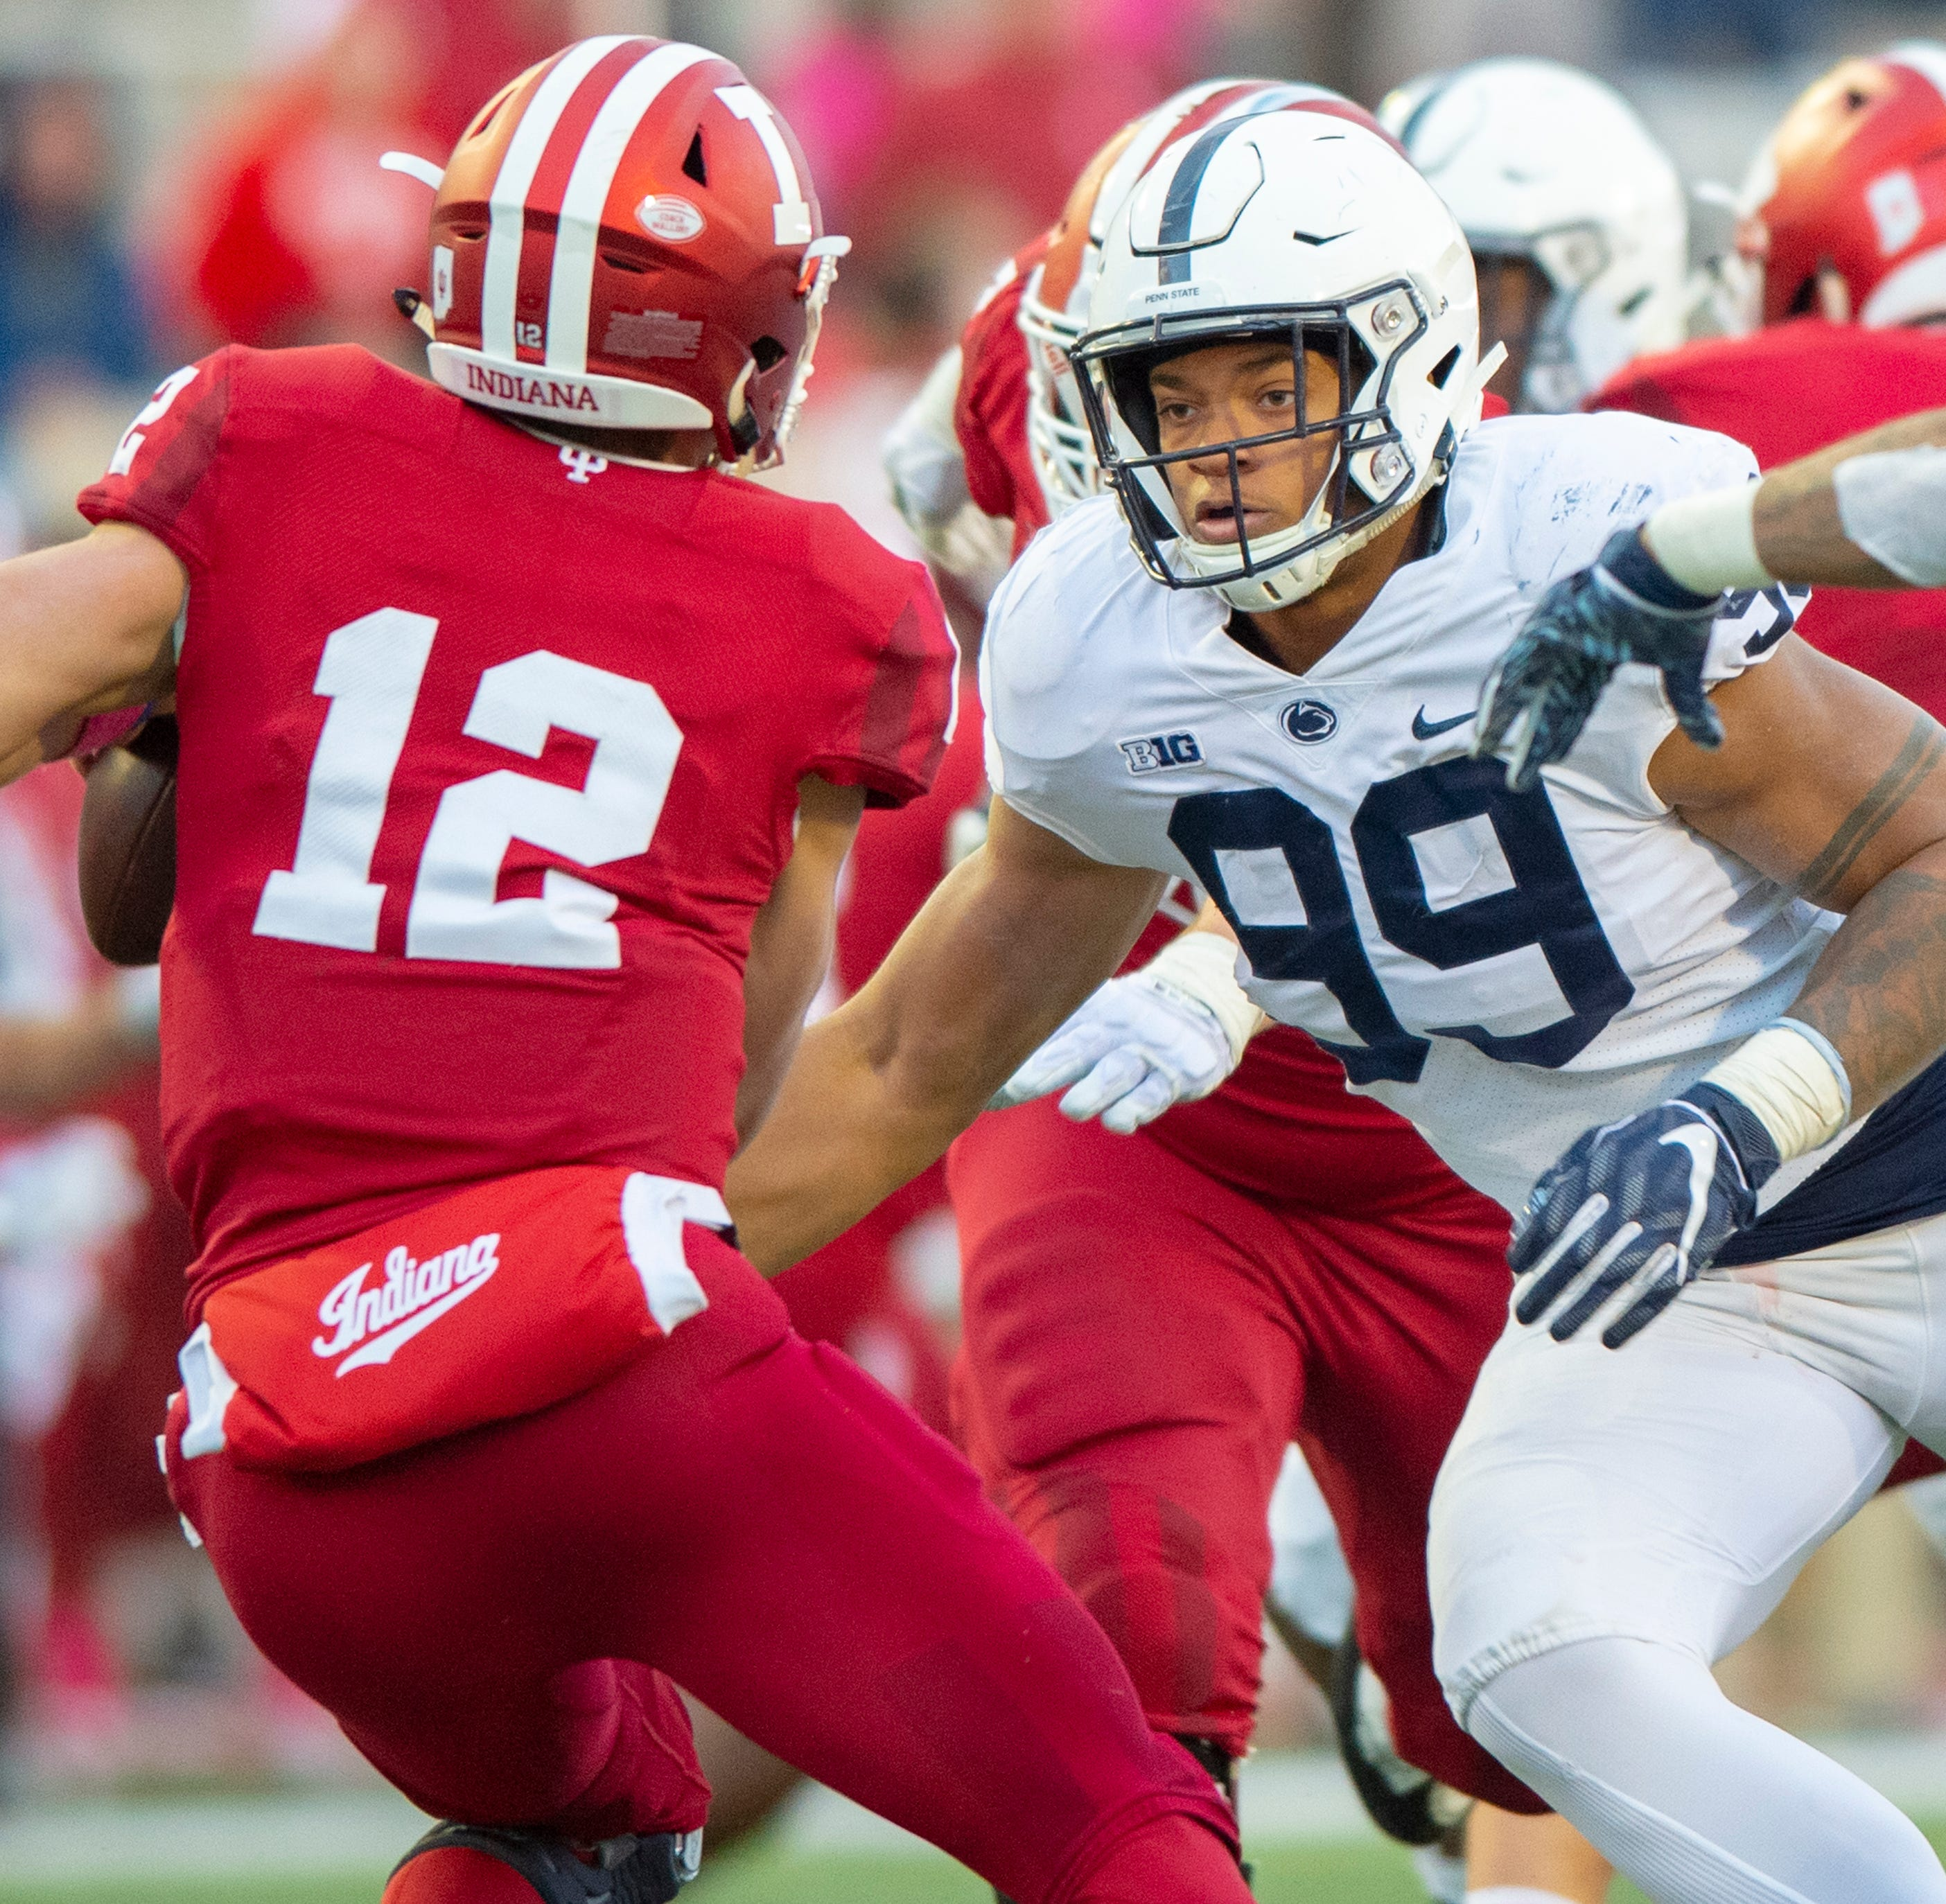 Mistake-prone Penn State looks closer to crumbling than rising up in second half